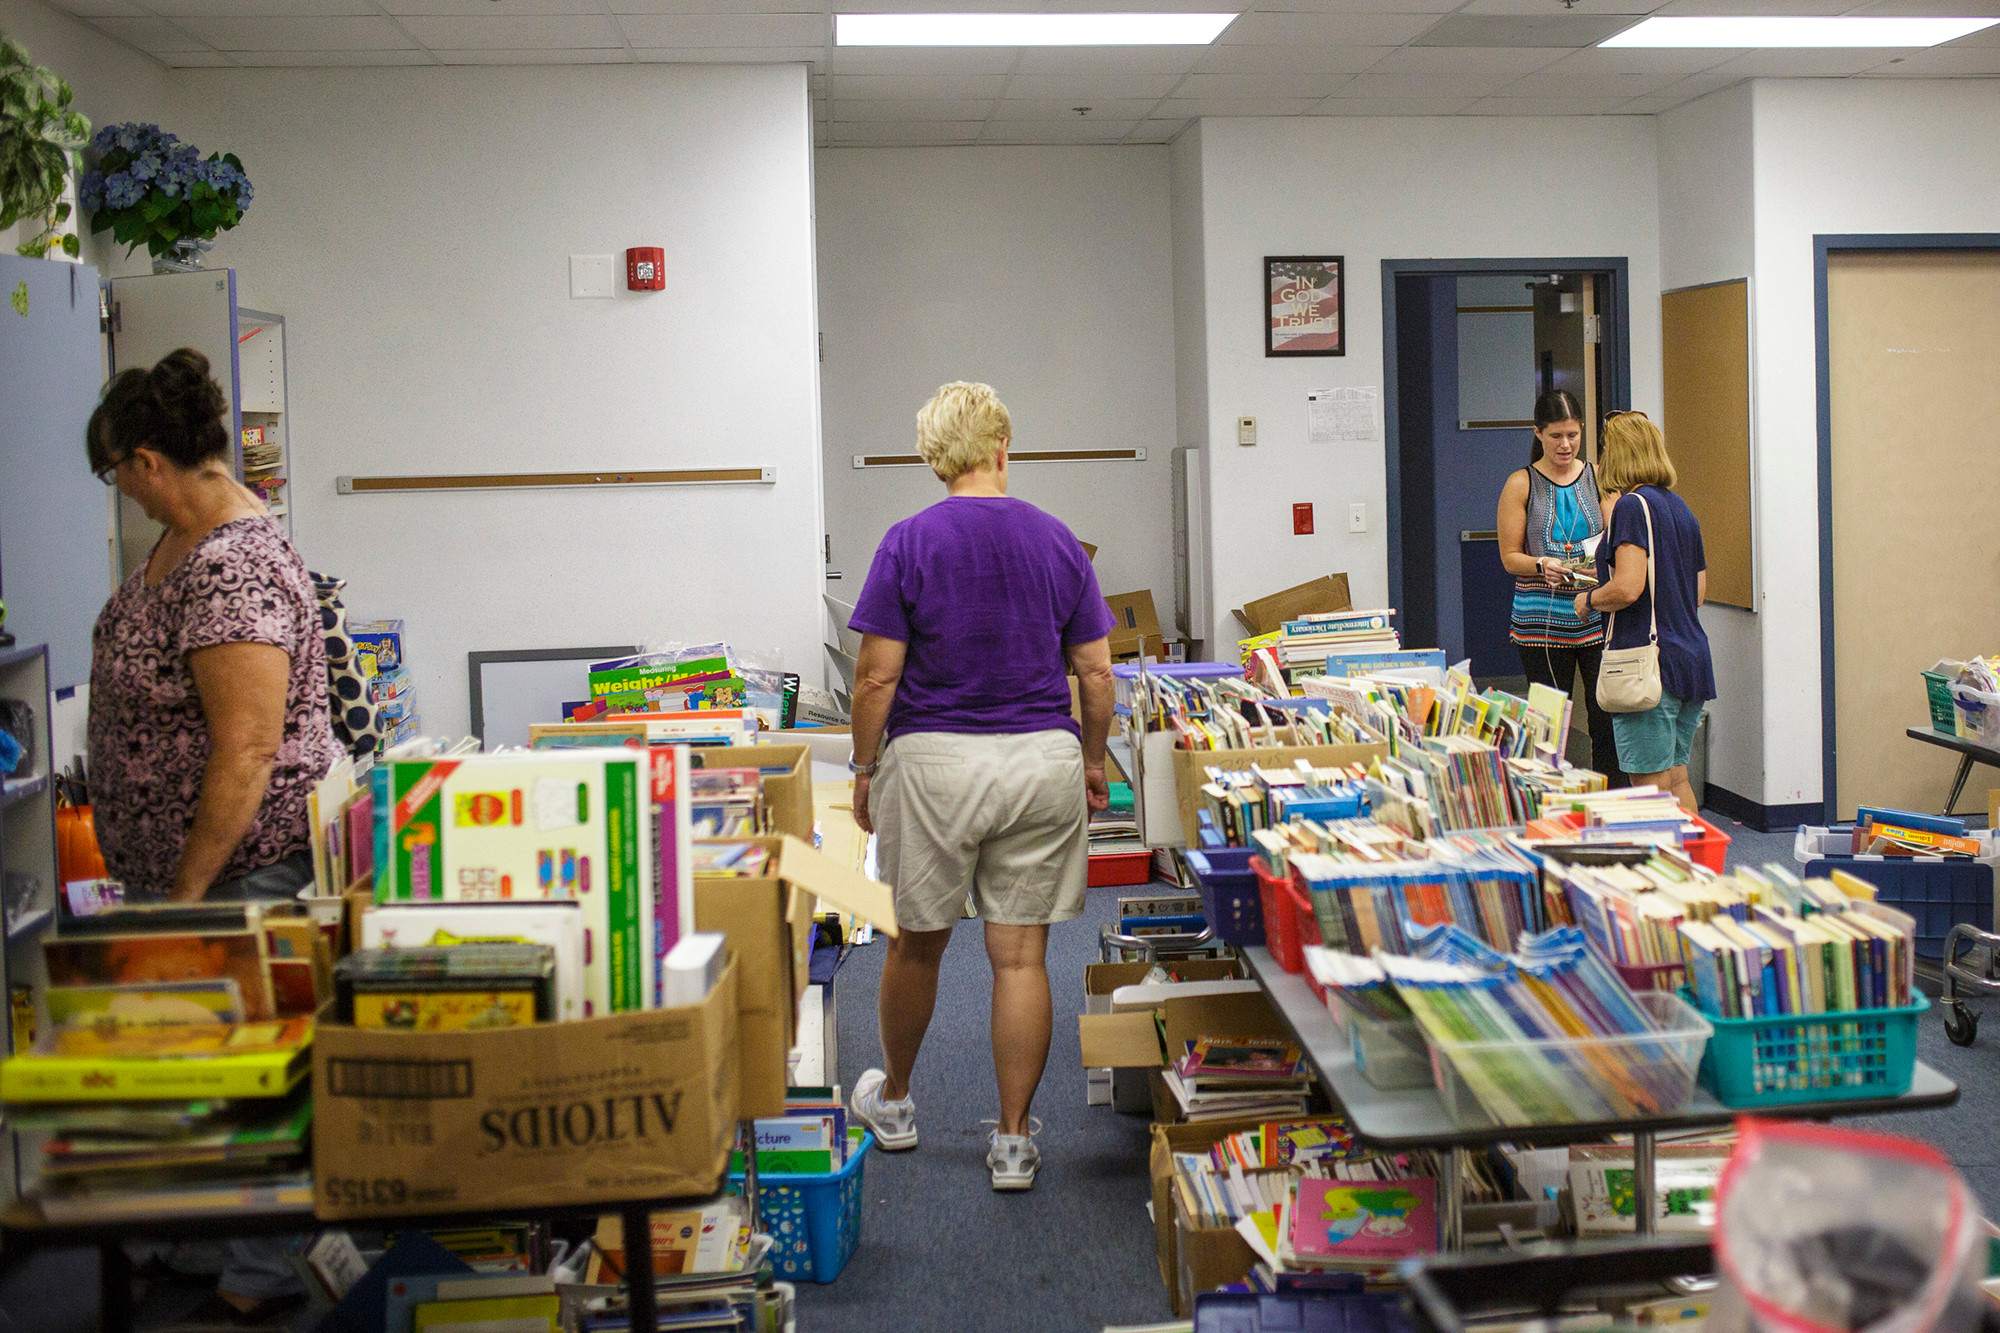 Teachers from Robert M. Patterson Elementary School stopped by Thunderbolt Elementary School Tuesday after class to browse unused items for sale in the Kudos to Karen teacher depot.